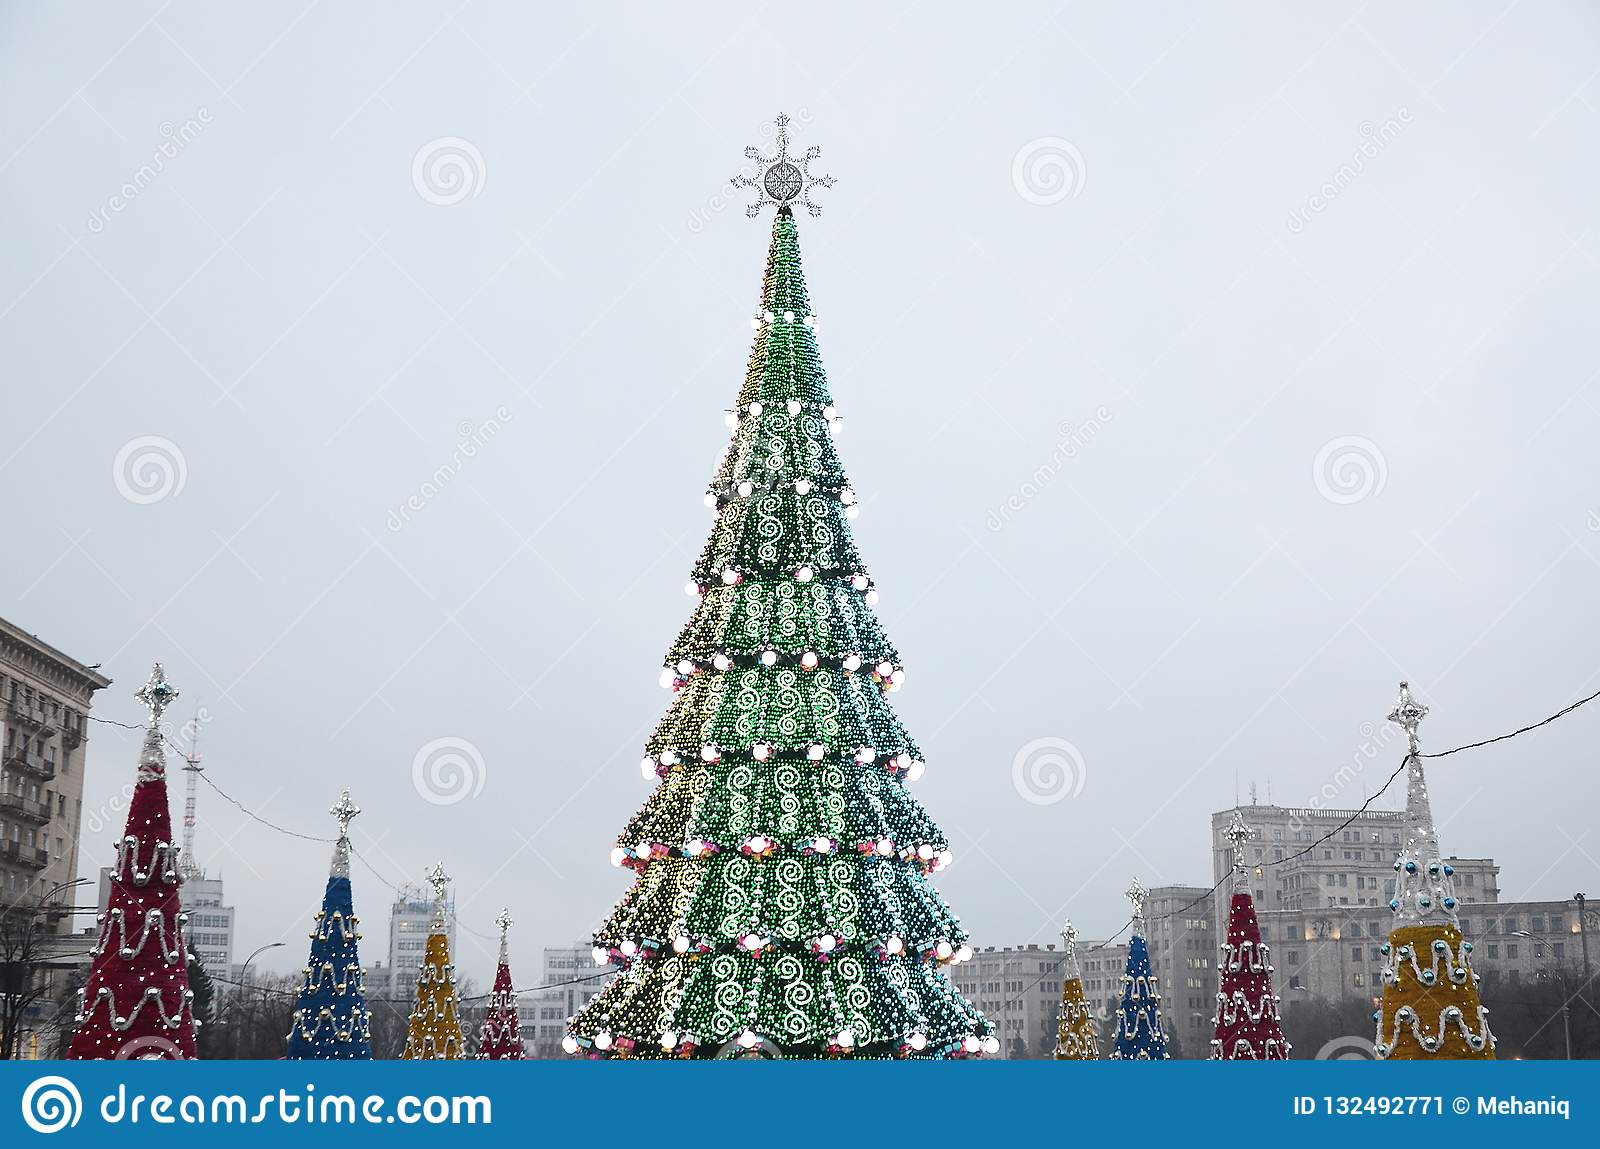 Artificial Christmas Tree Stand.A Huge Artificial Christmas Tree Stands On The Square Of